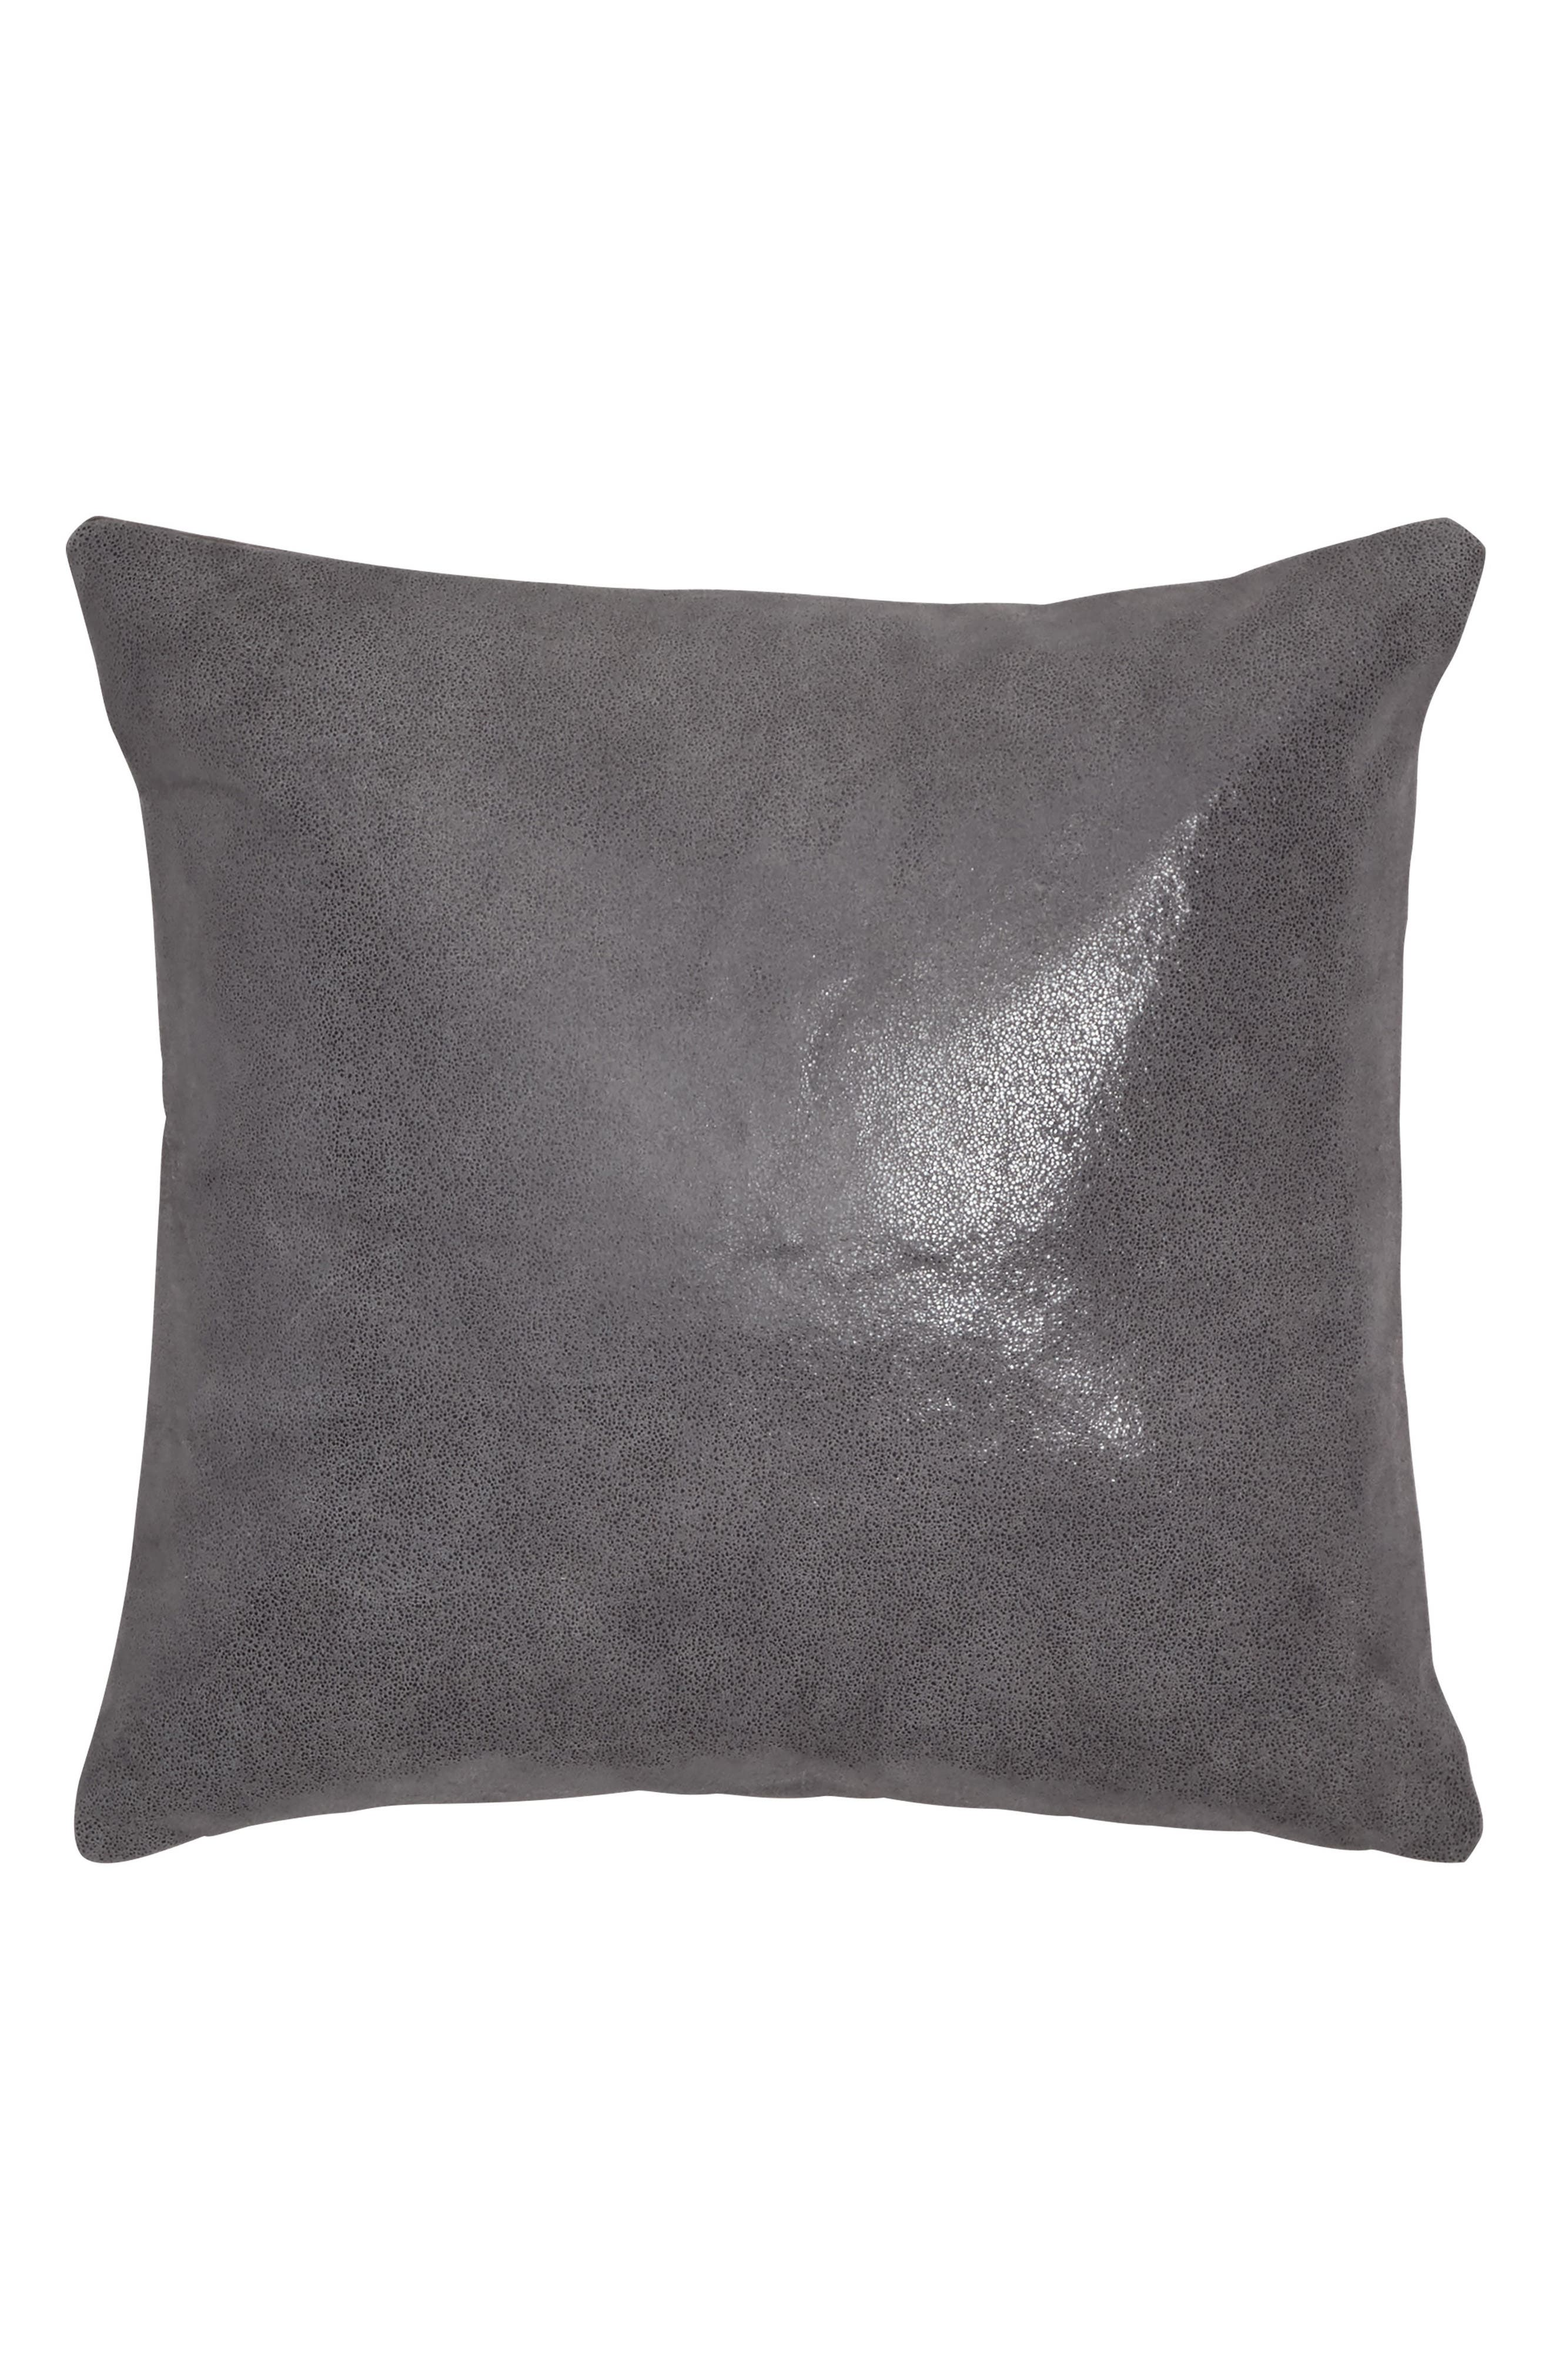 Moonscape Leather Accent Pillow,                         Main,                         color, 020